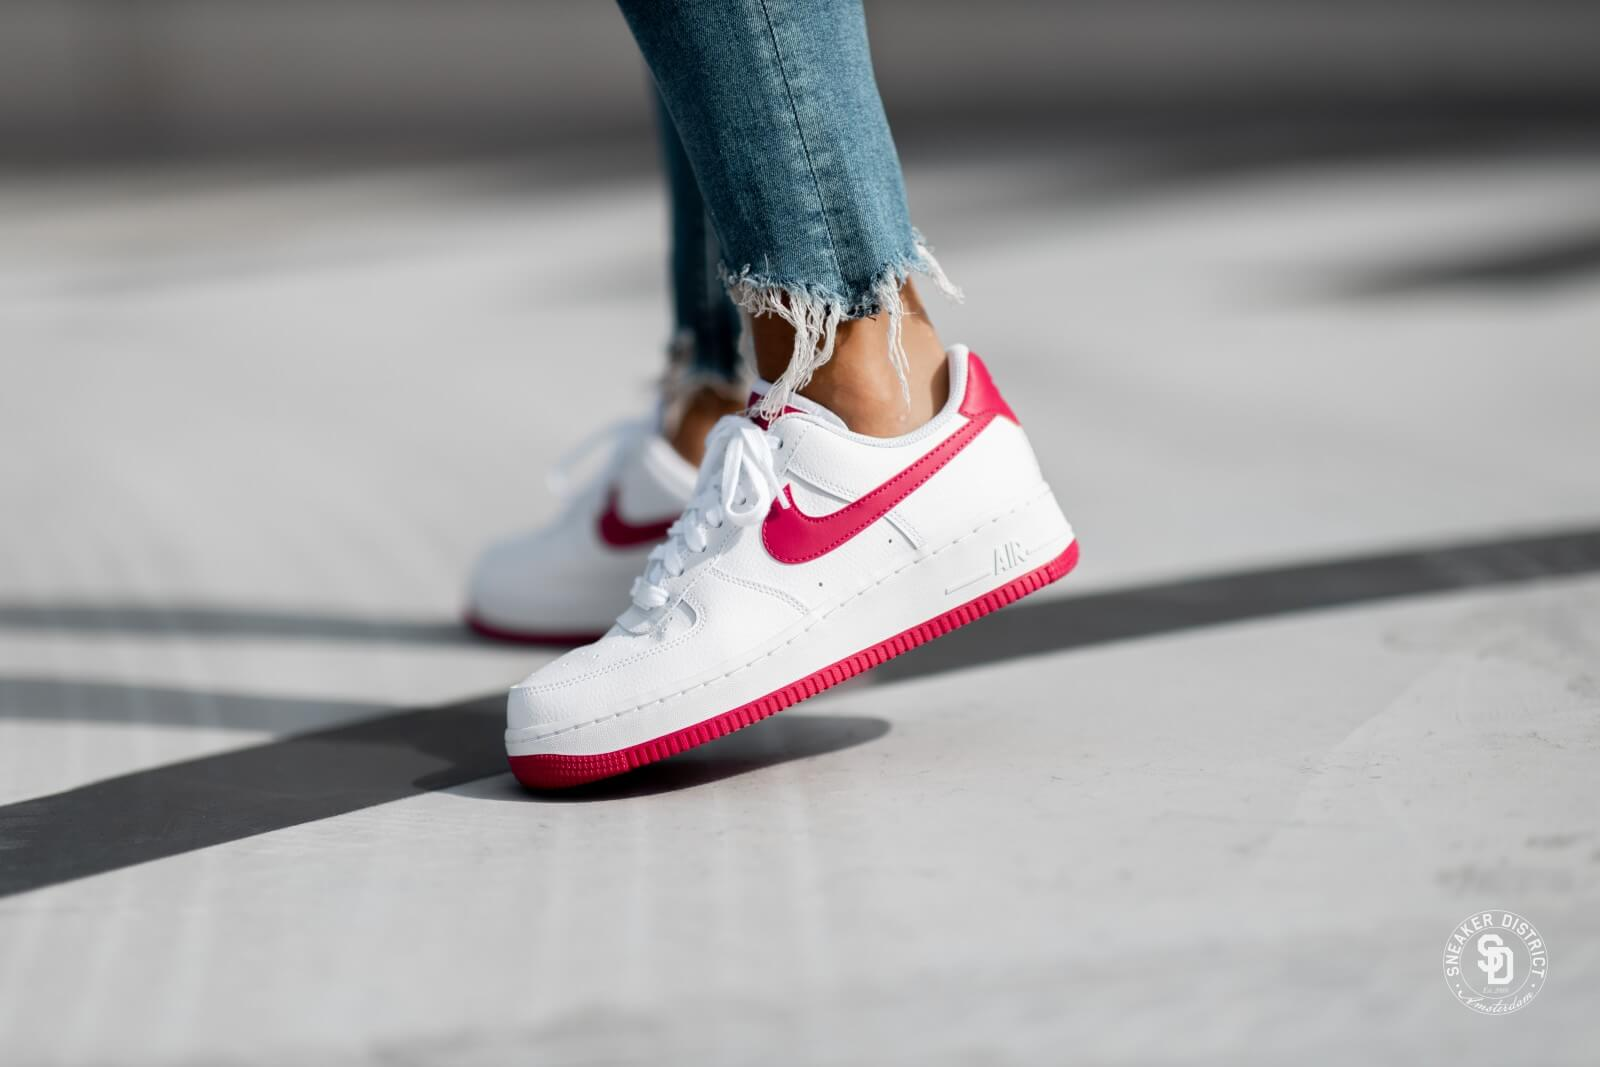 Nike Air Force 1 '07 WhiteWhite Noble Red Wild Cherry For Sale